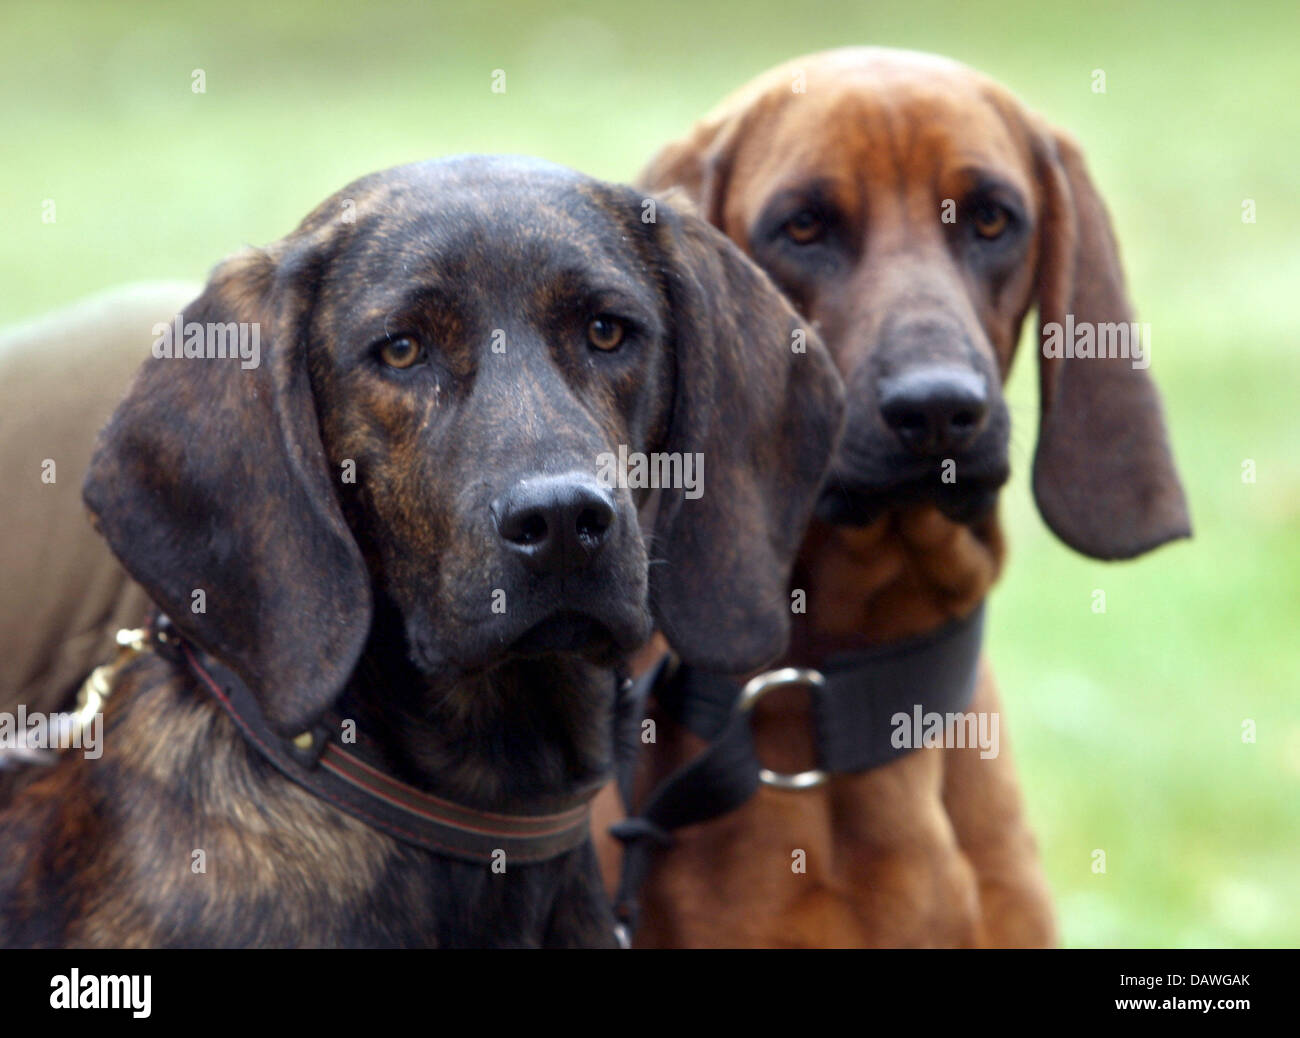 Police dogs Quincy (L), a Black Forest bloodhound, and Dr. Watson, a Bavarian mountain bloodhound, are pictured - Stock Image